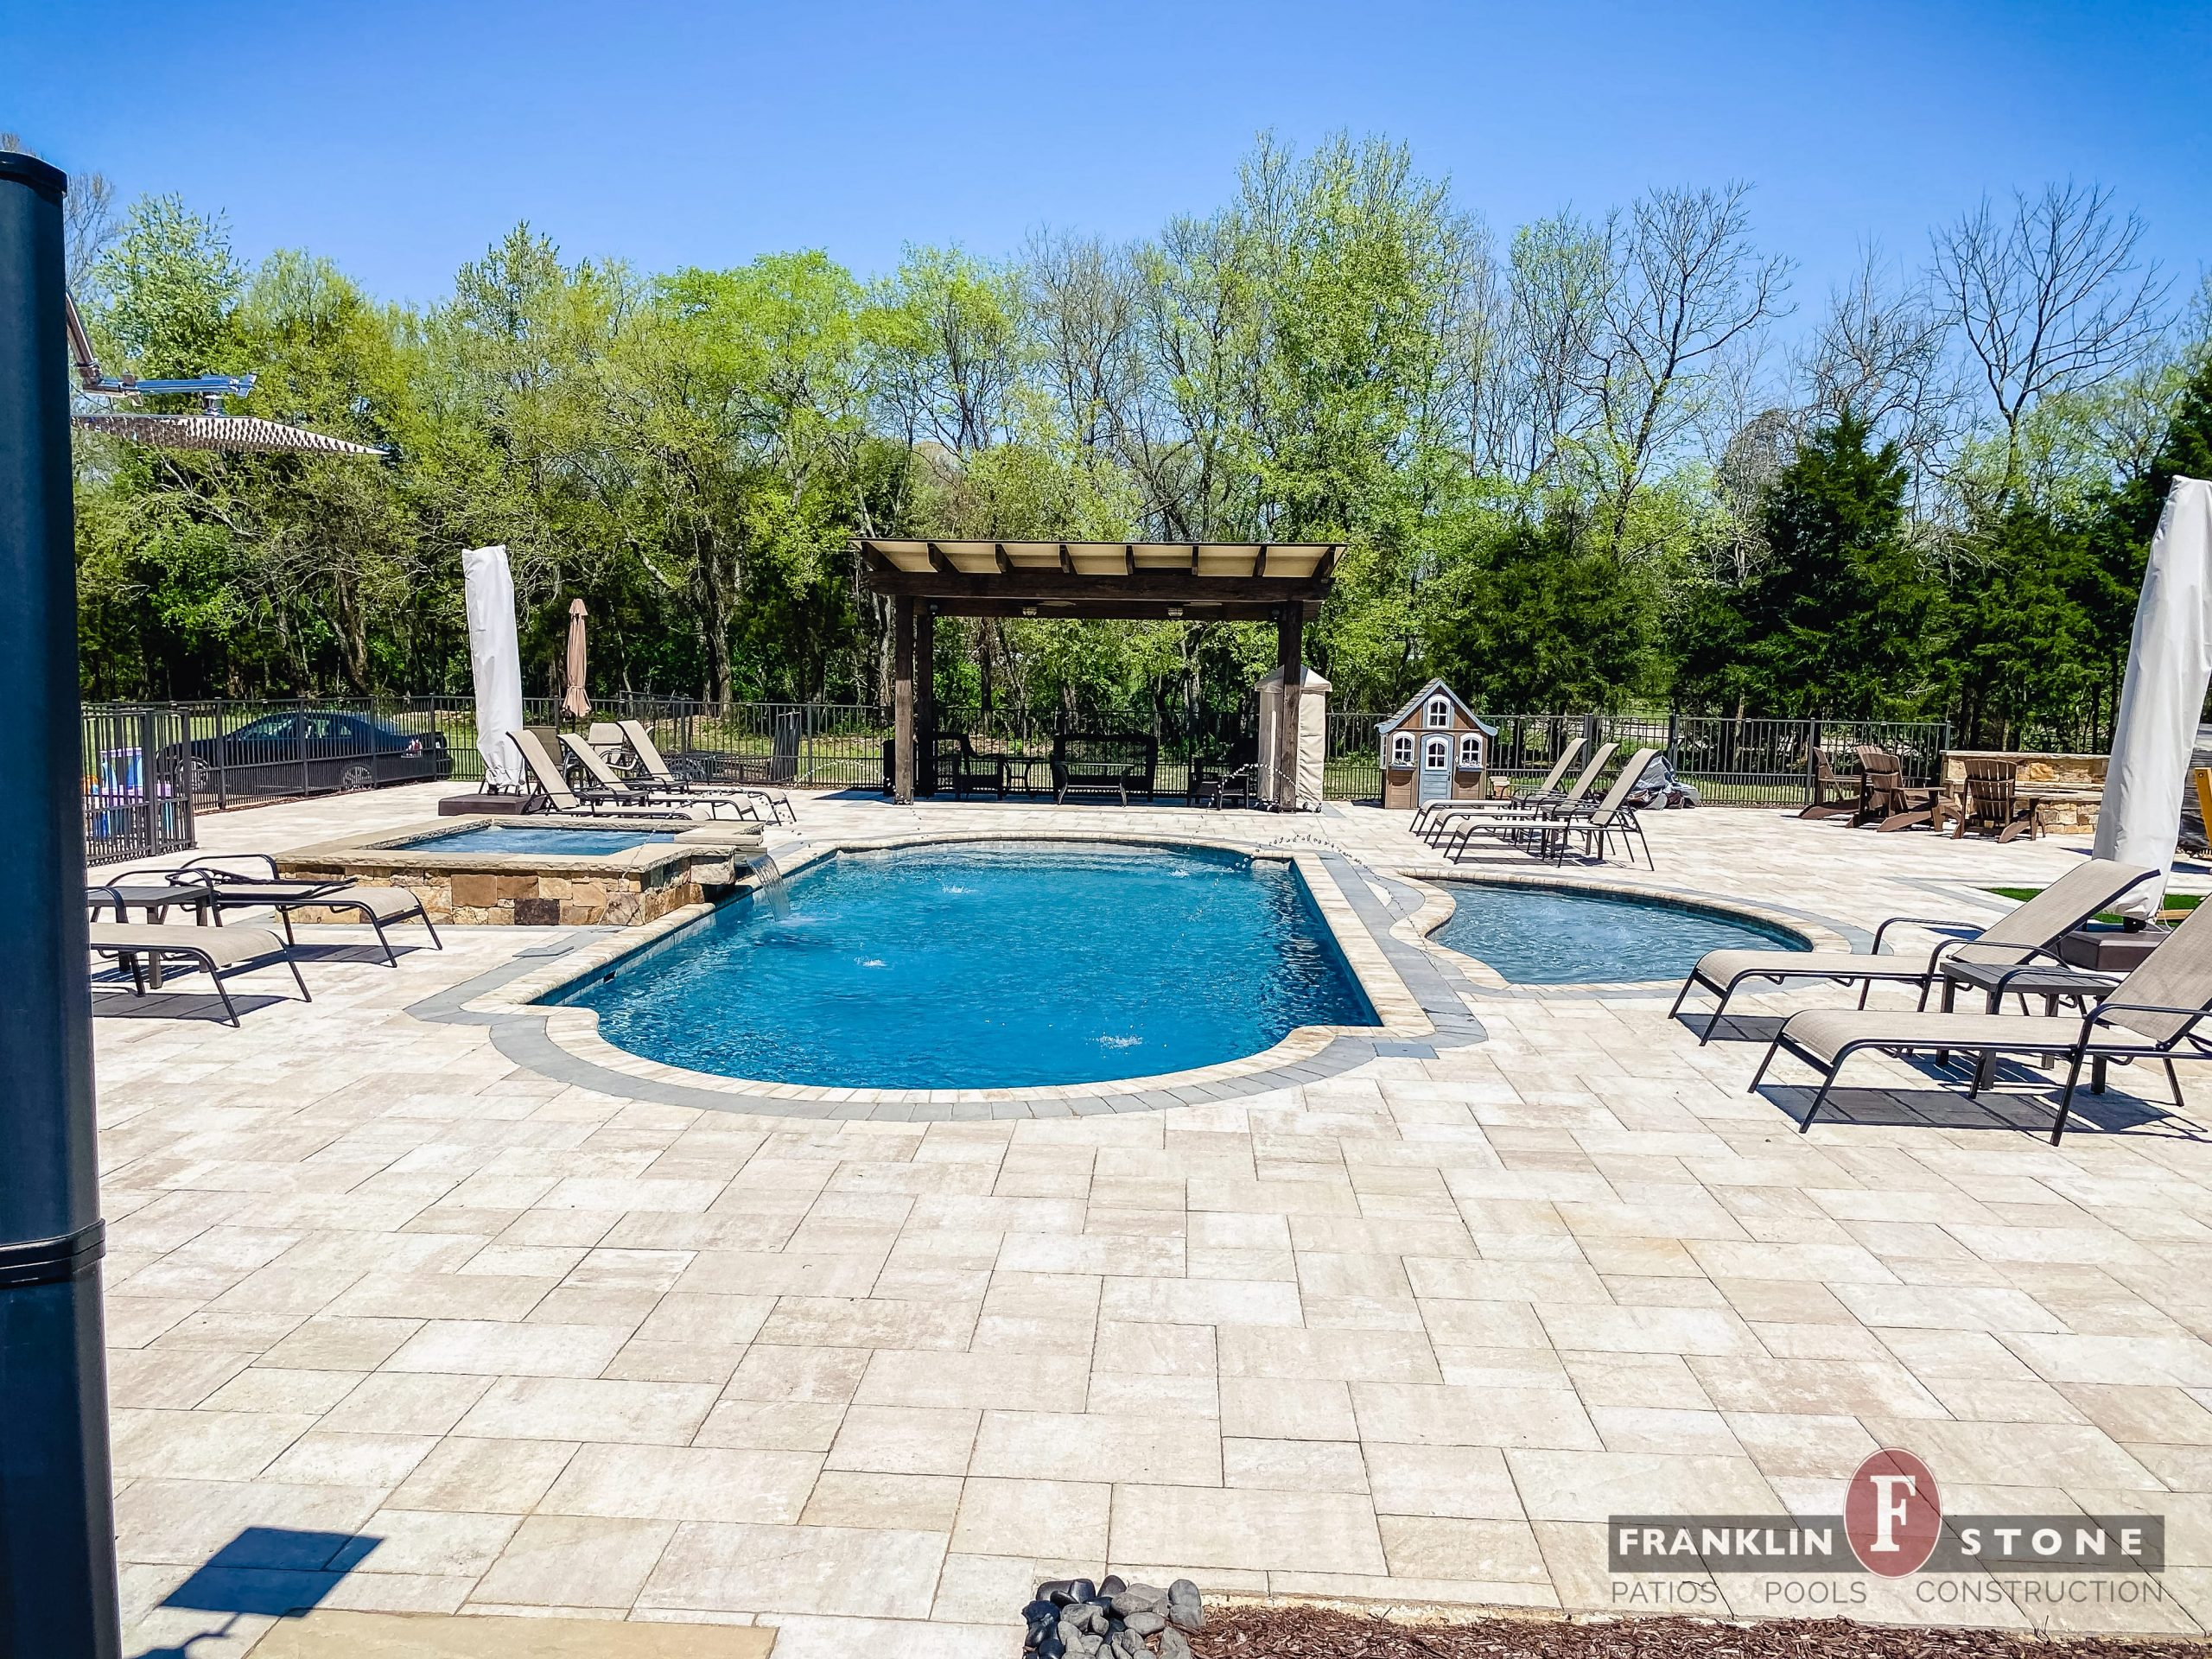 Franklin Stone pergola and pool and spa with running water features